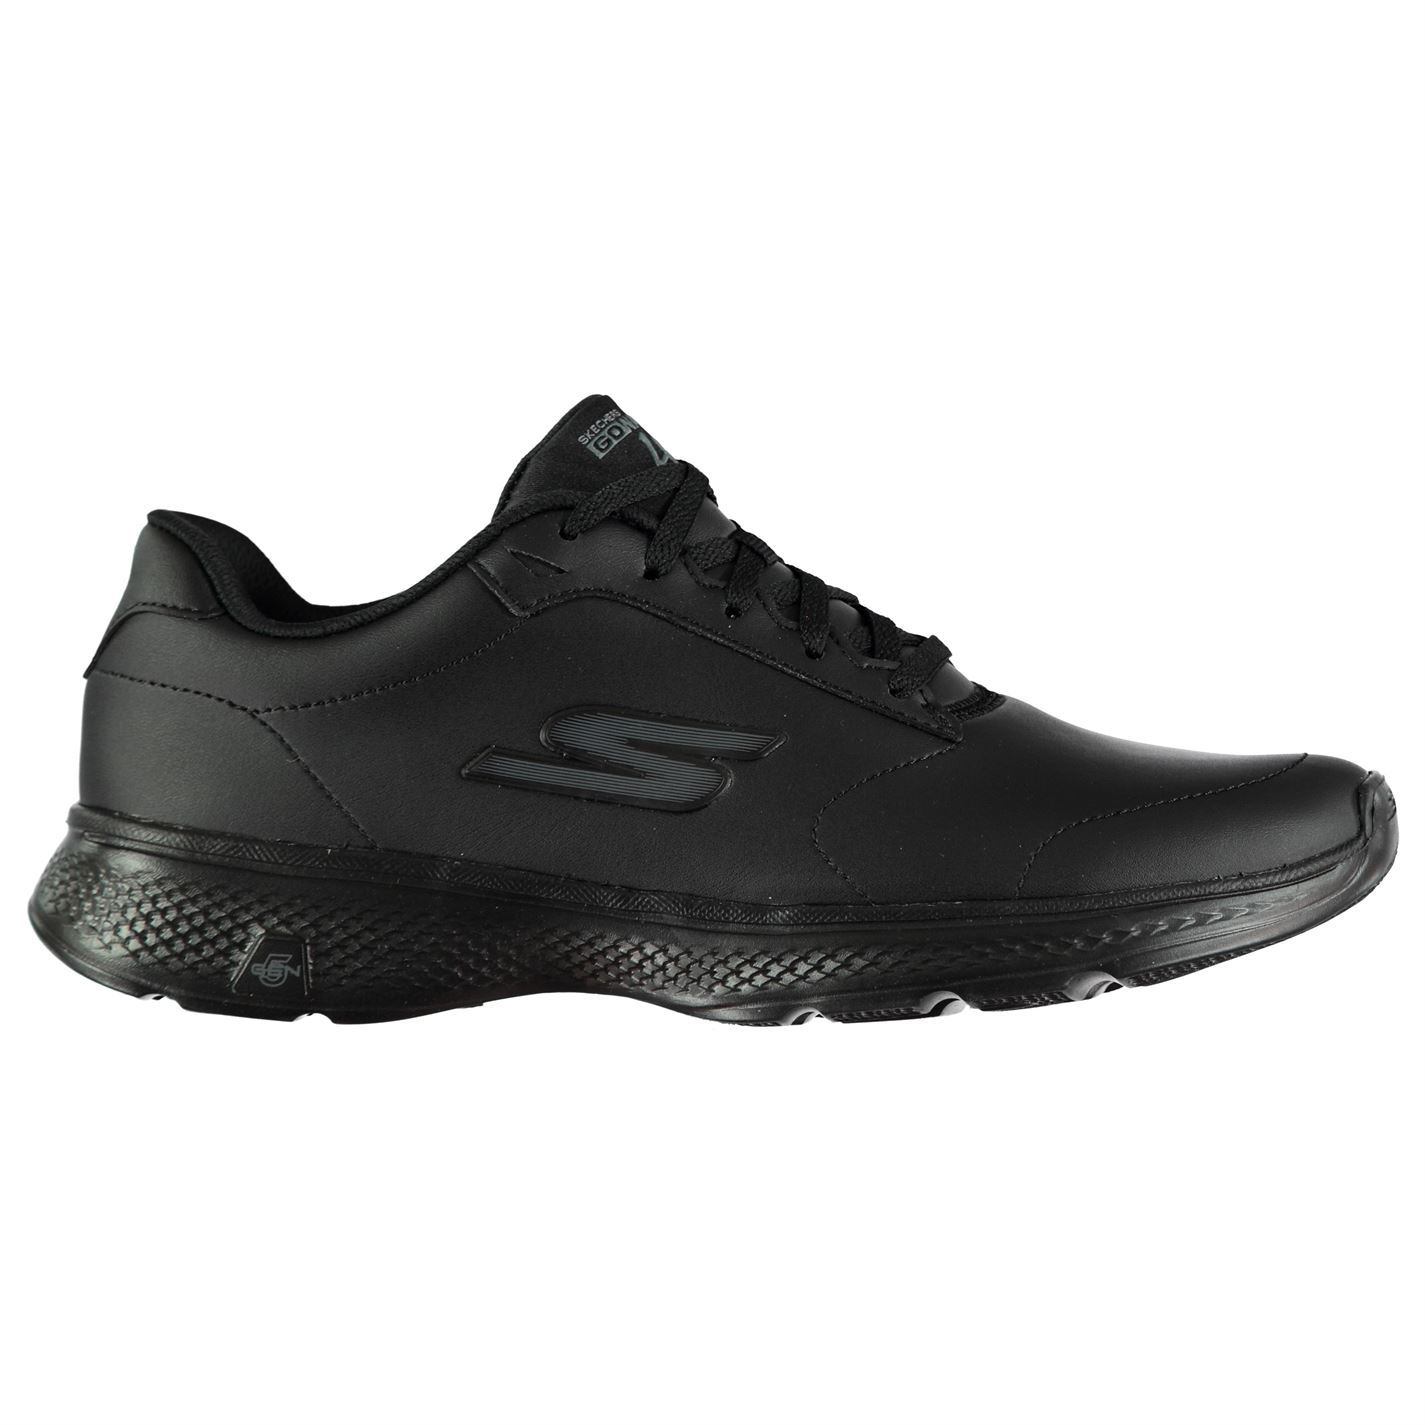 Skechers Trainers Mens Go Walk 4 Trainers Skechers Runners Lace Up Lightweight e32024